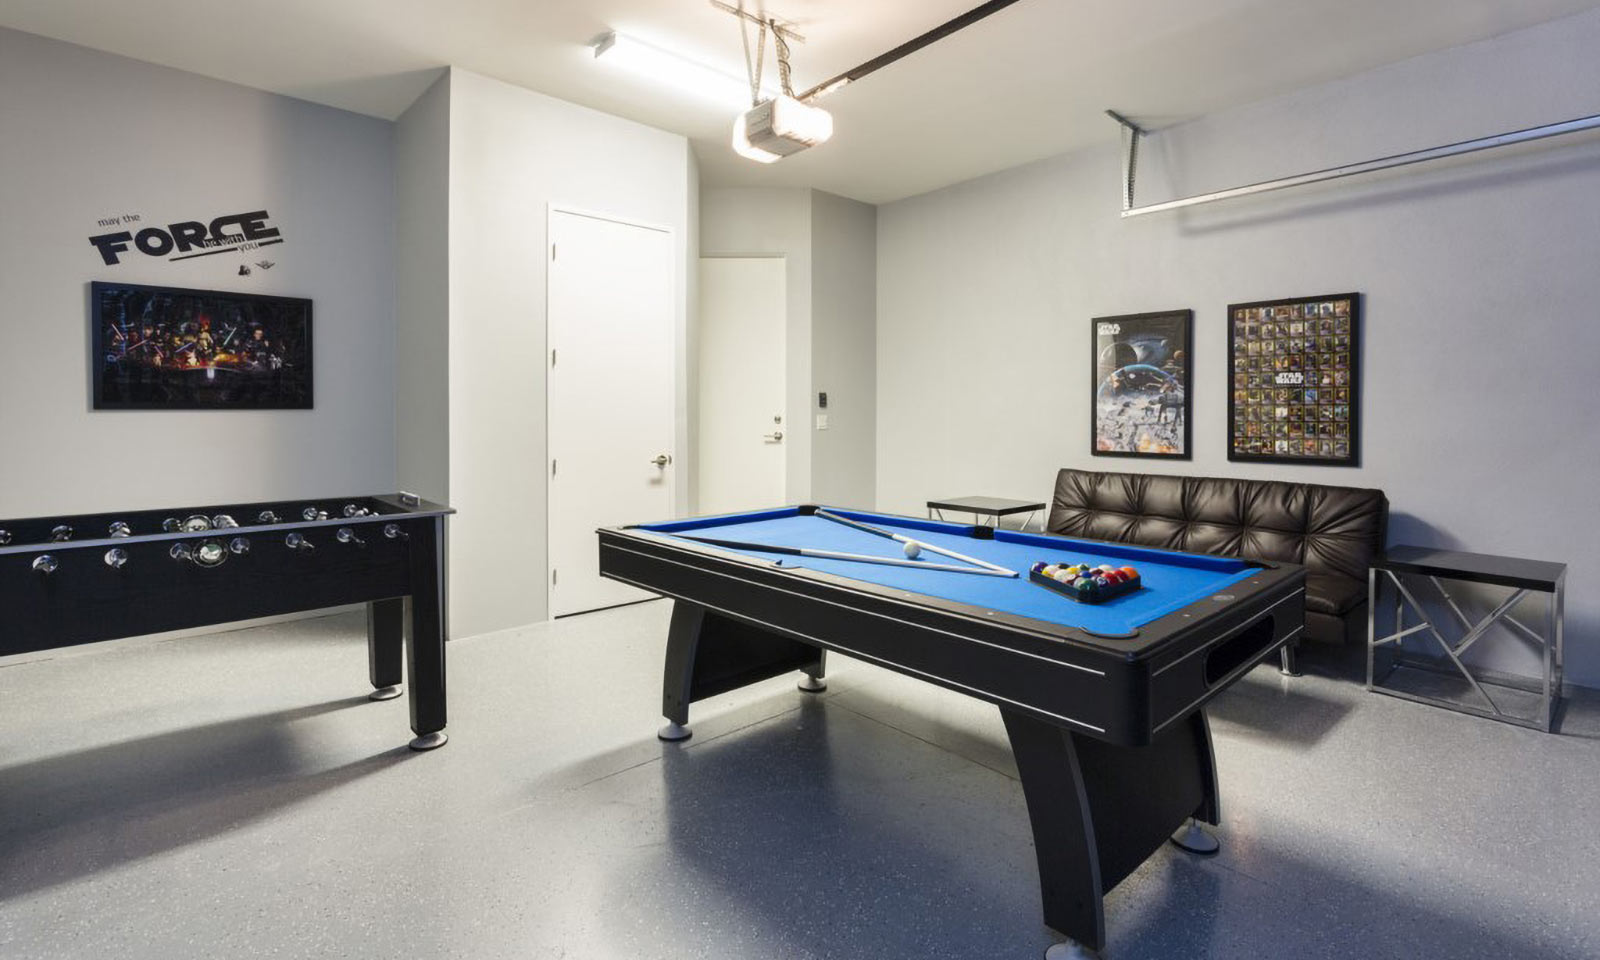 [amenities:Game-Room:2] Game Room